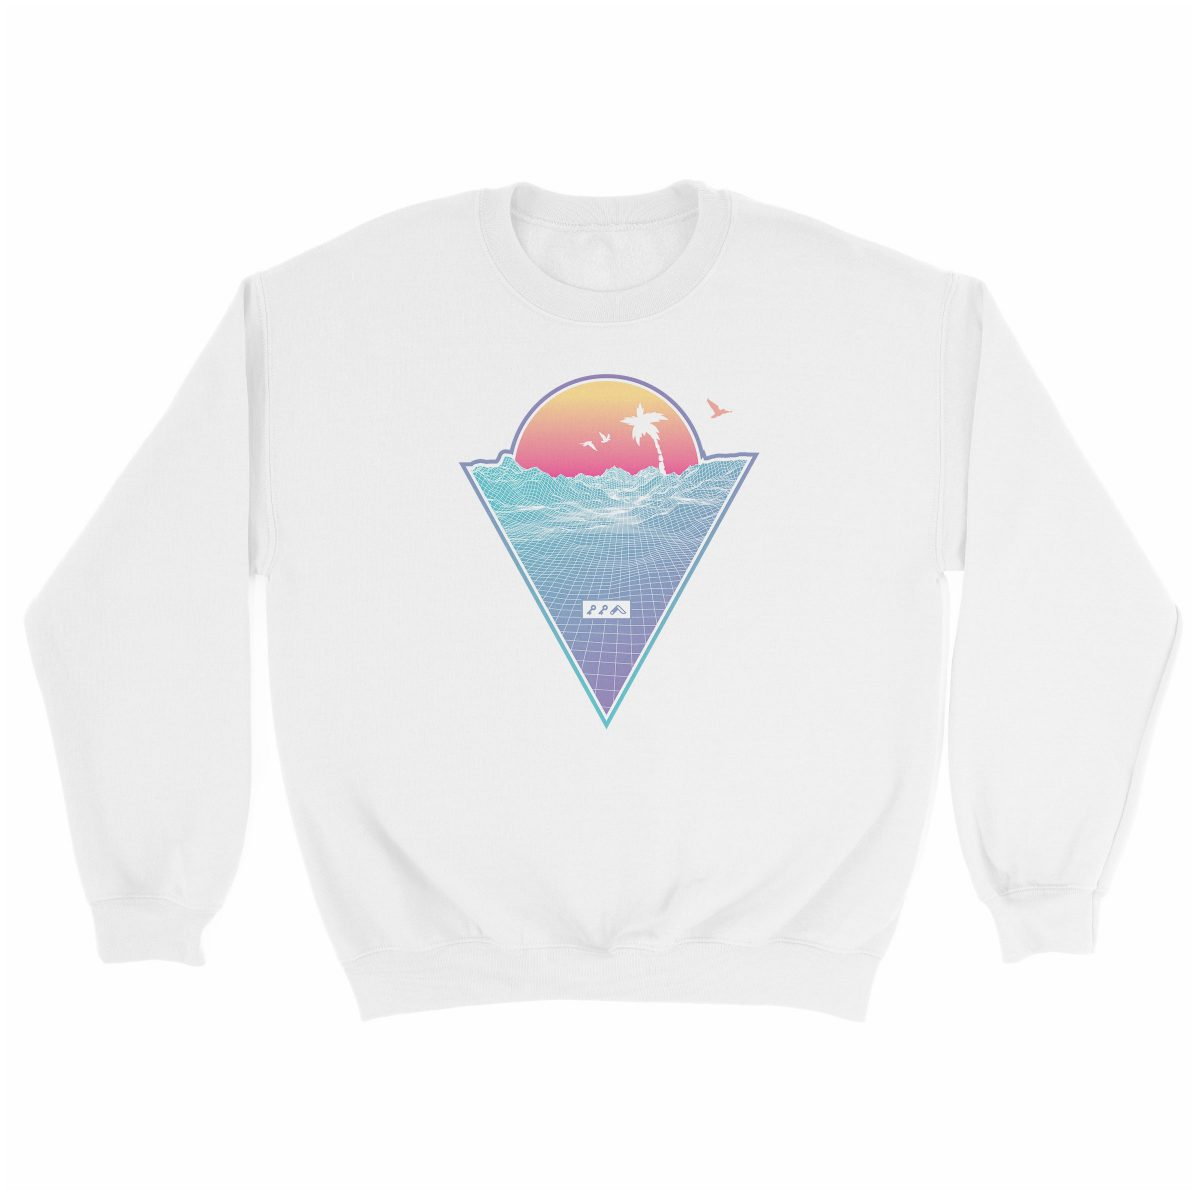 """OFF THE GRID"" cali vibes retro 80s design sweatshirt white at kikicutt.com"